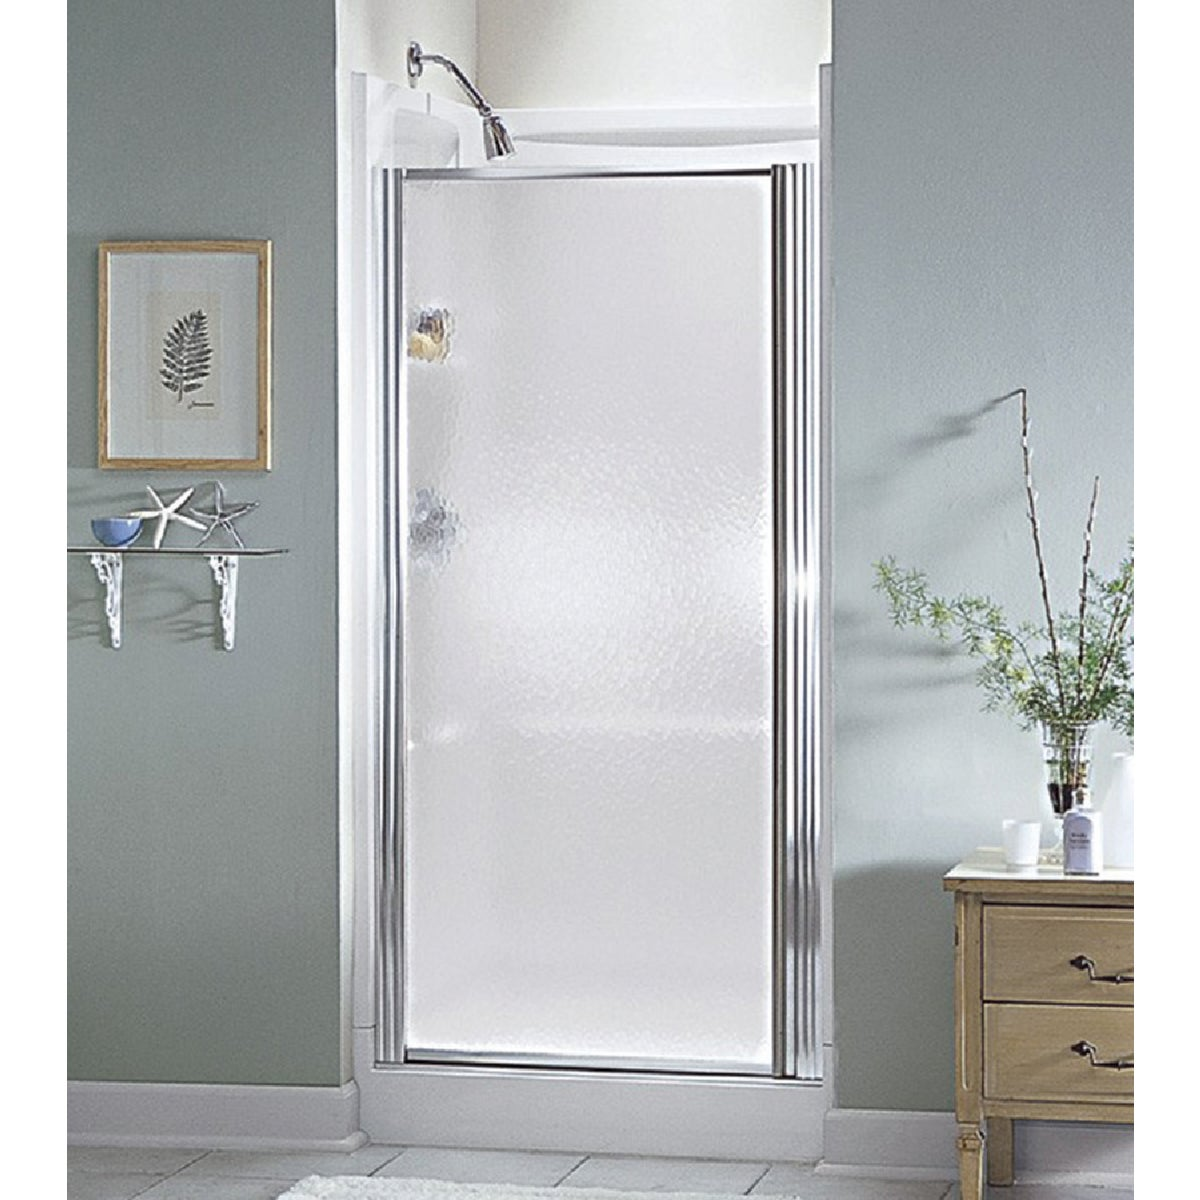 34-1/2-36 PIVOT SHW DR - 950C-36S by Sterling Doors